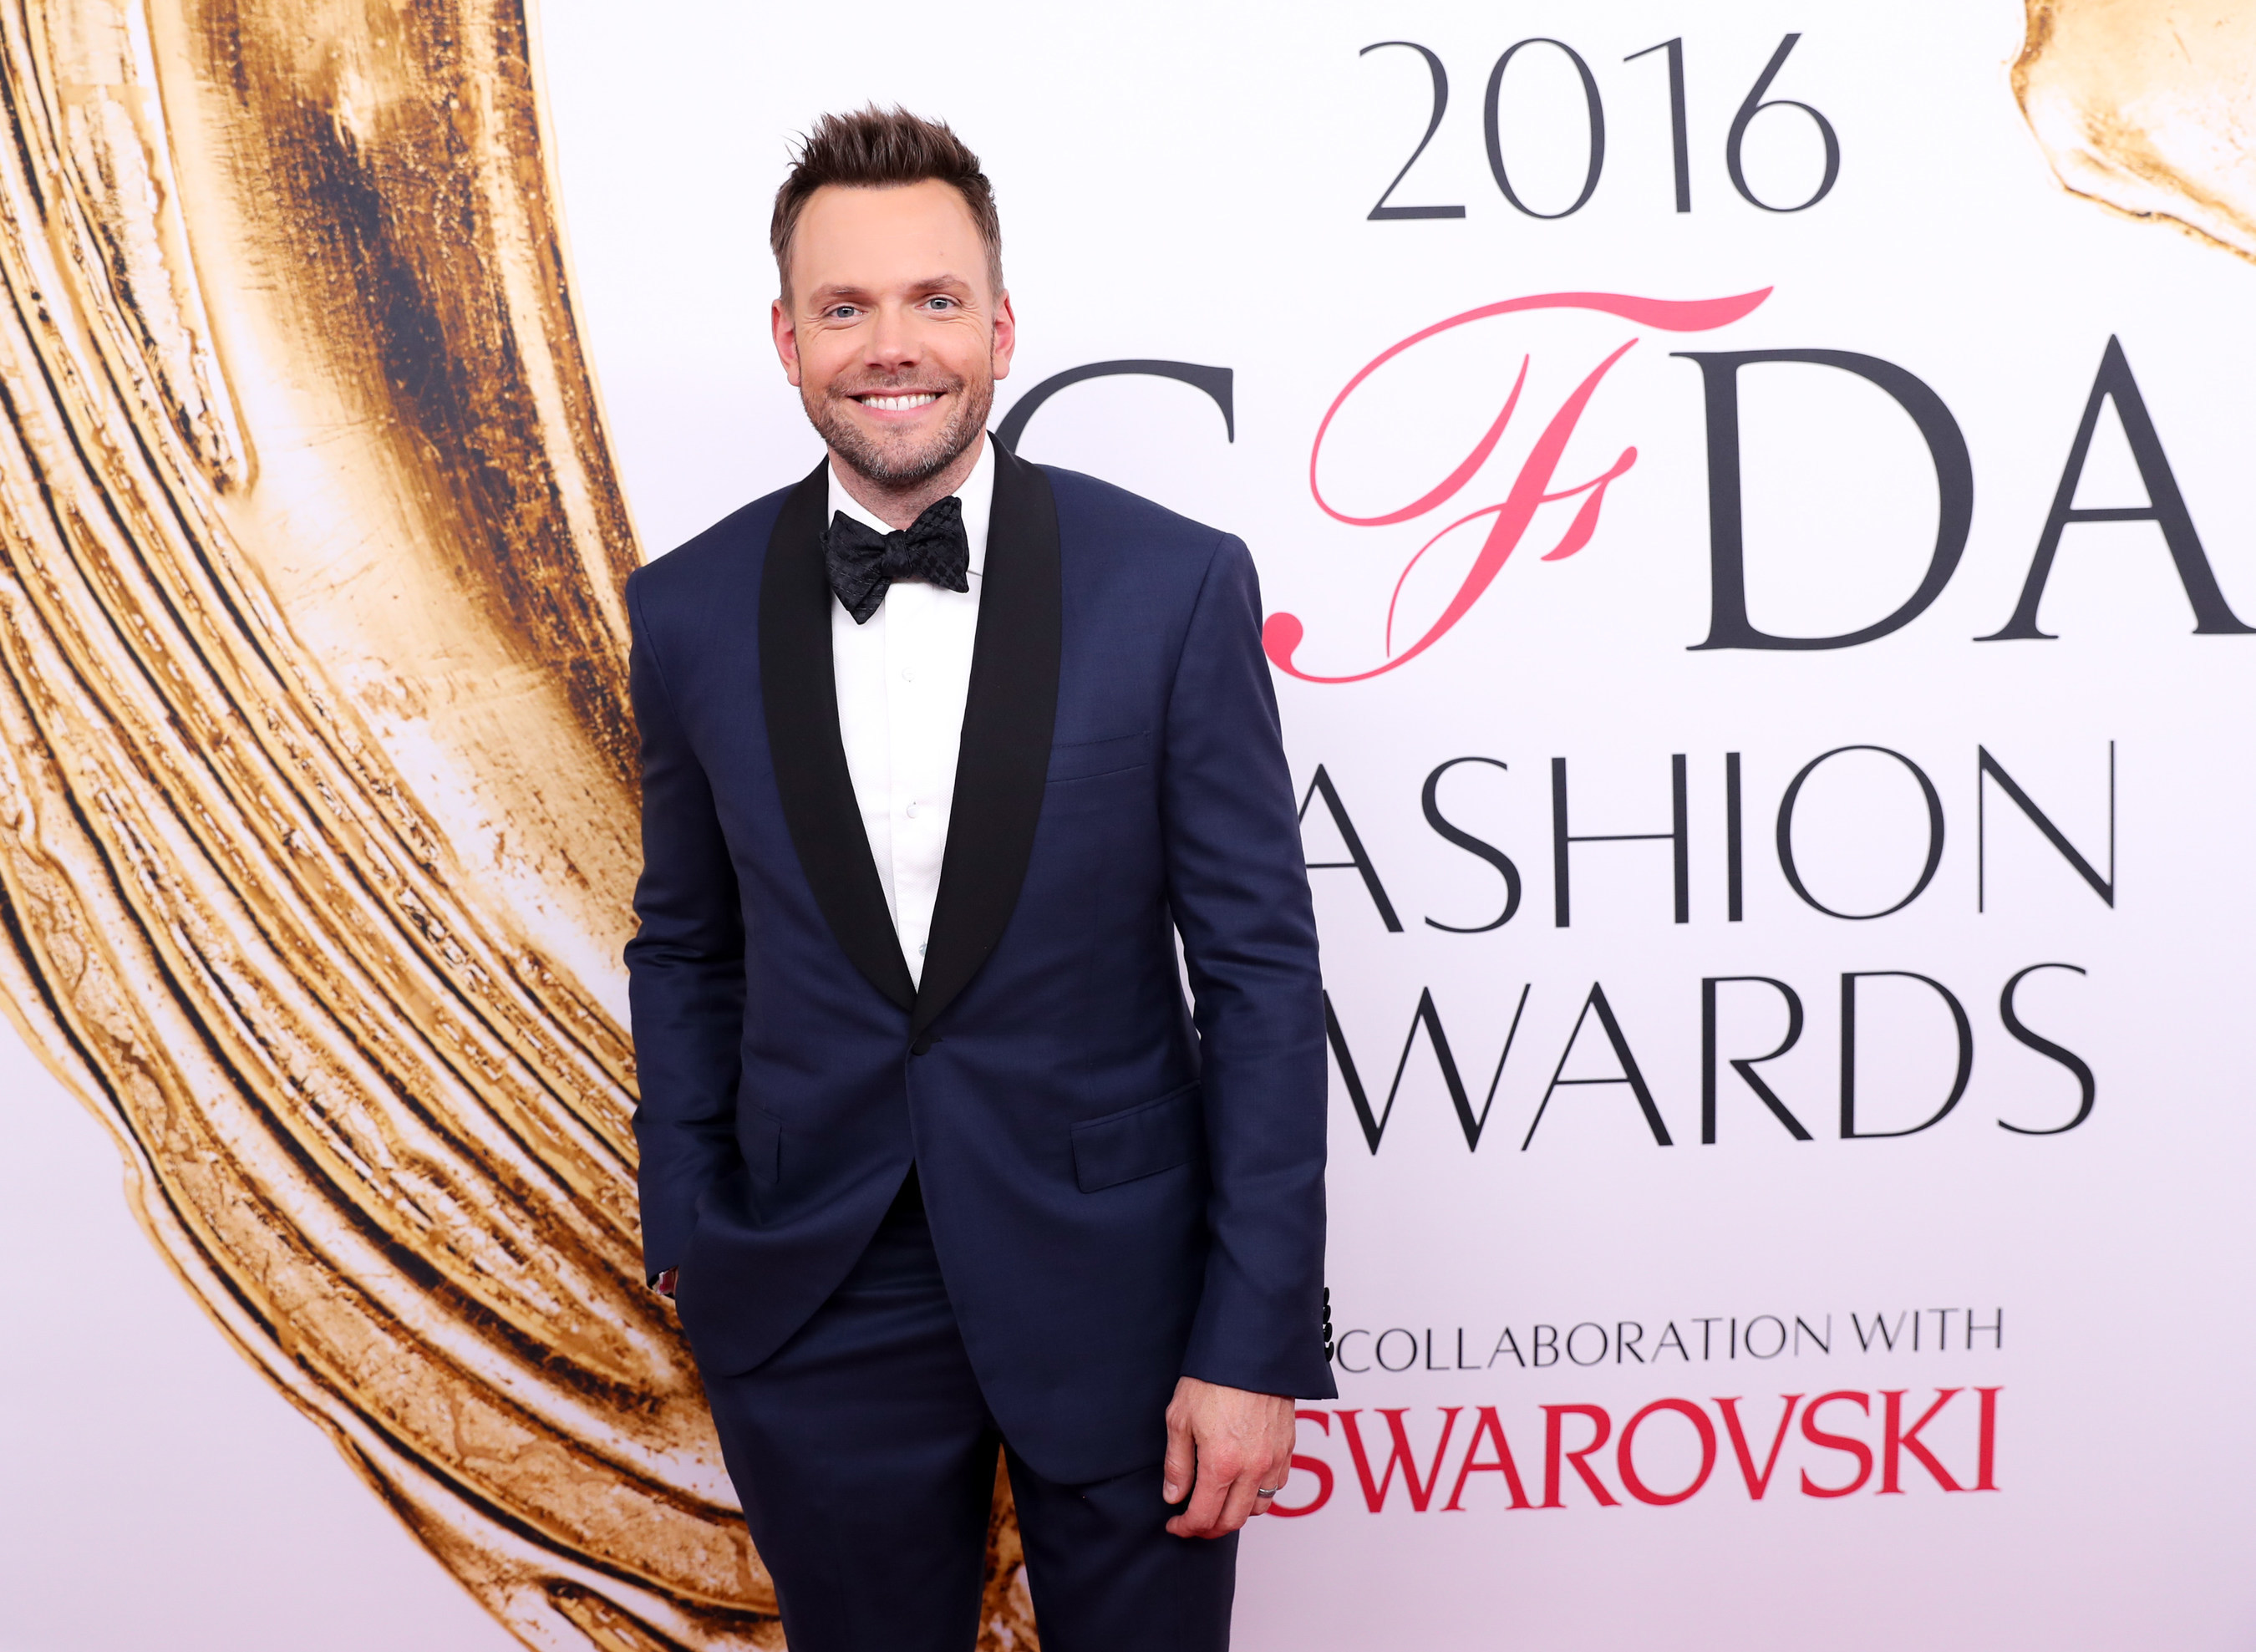 Winners Announced At The 2016 CFDA Fashion Awards In Collaboration With Swarovski